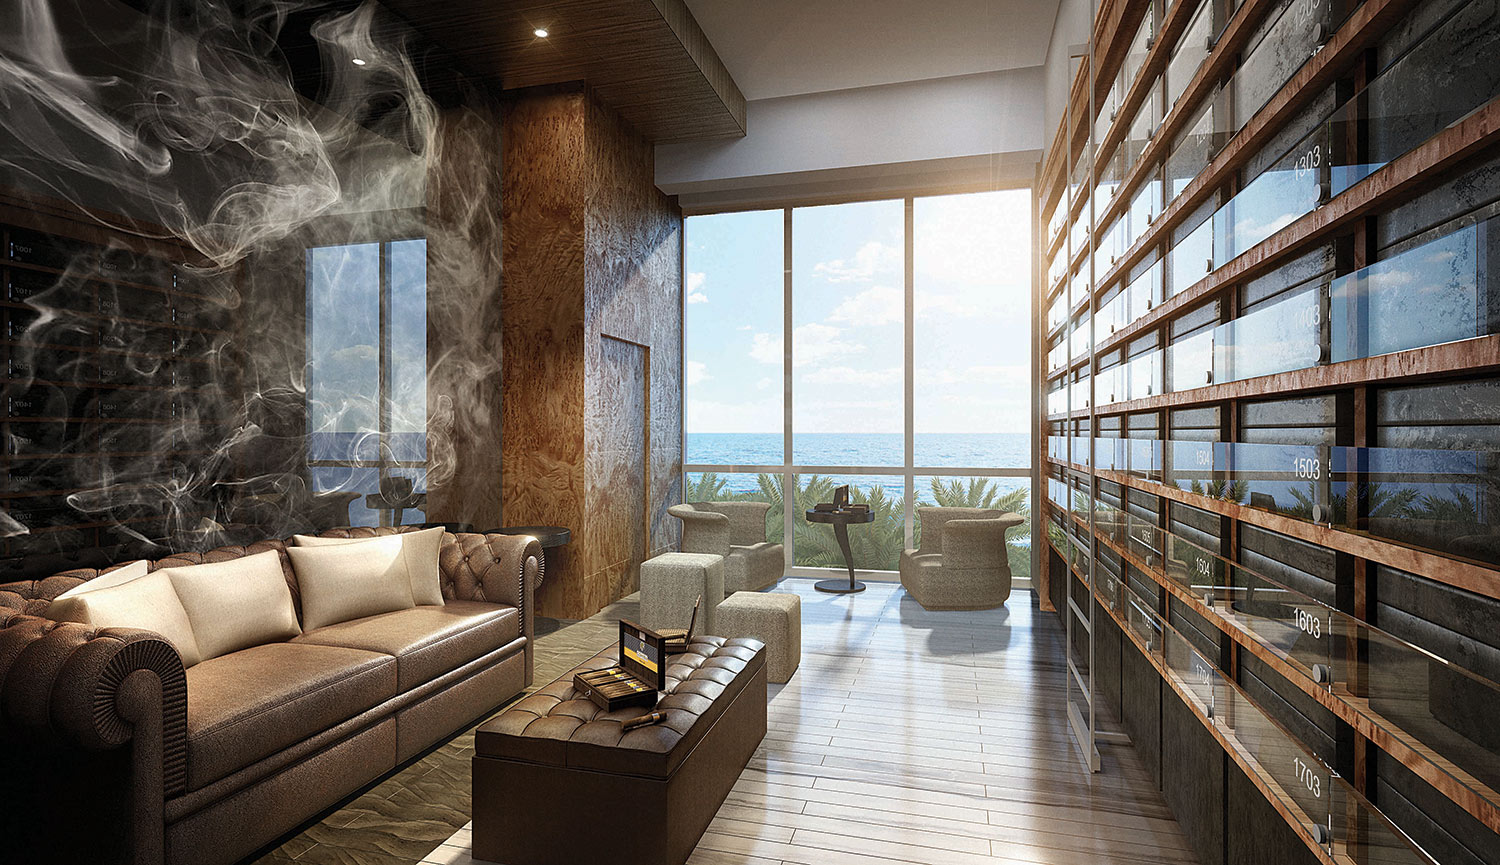 12 Questions Answered About Mansions At Aqualina